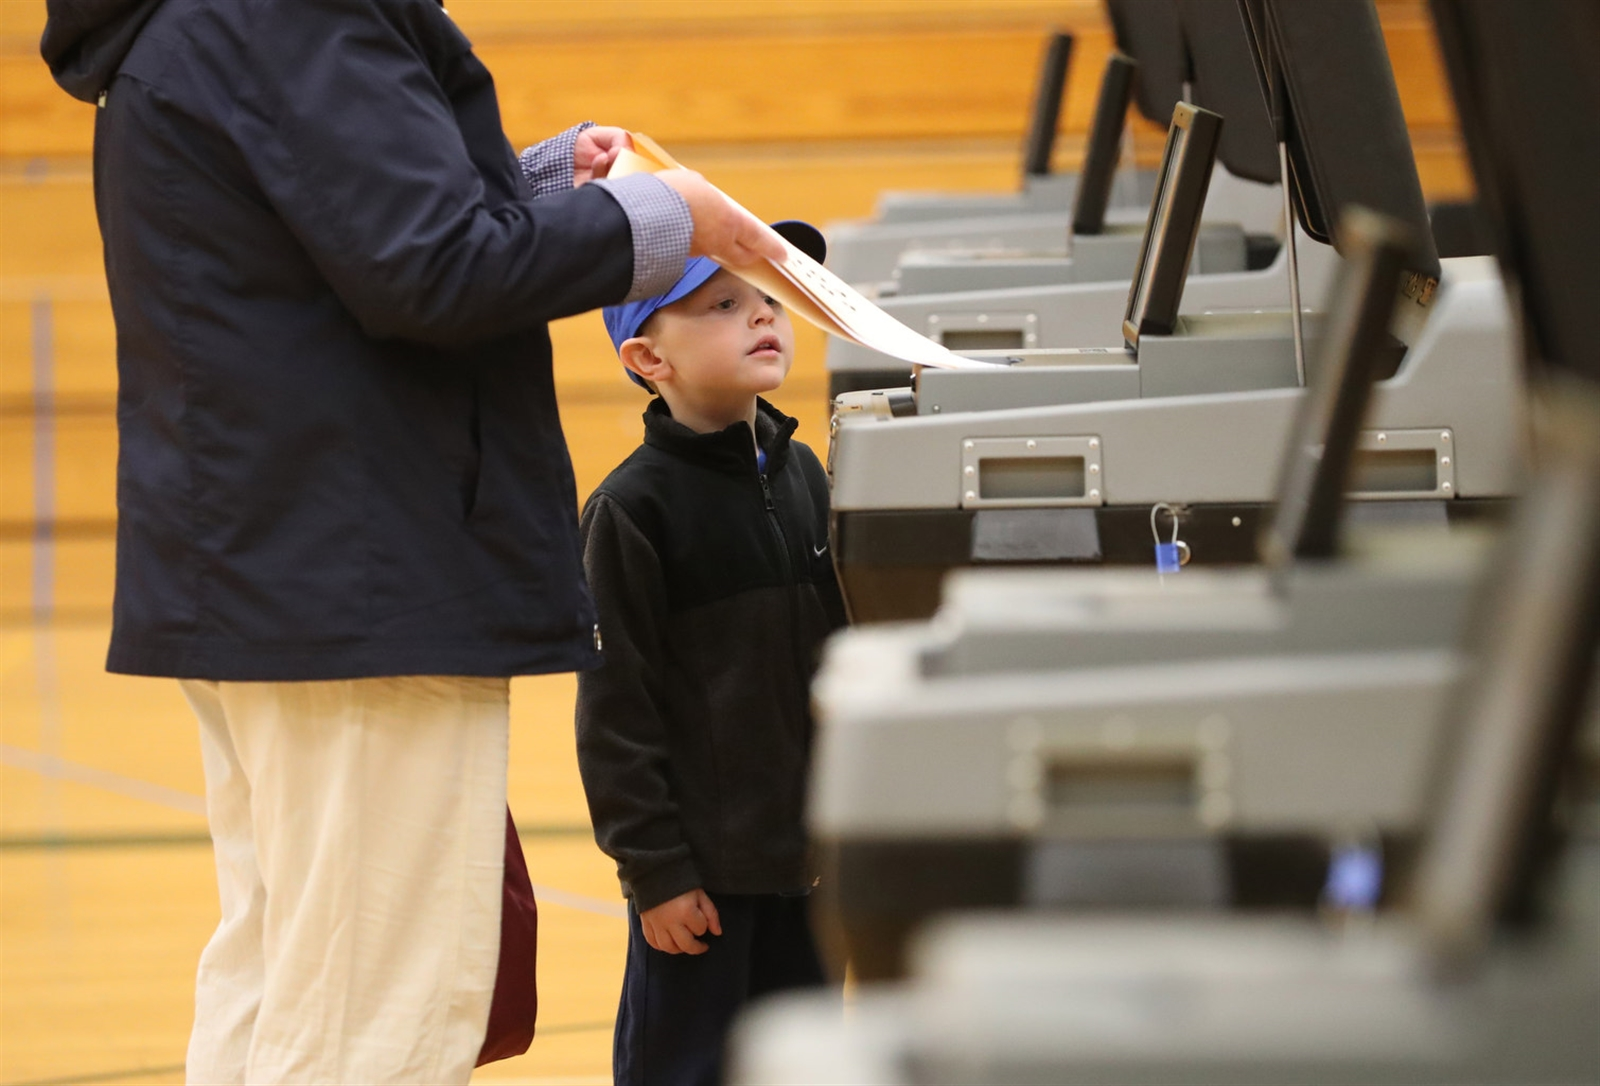 Jake Buesink, 5, watches as his grandmother Barb Burgstahler's vote is scanned at Williamsville North High School on May 15.